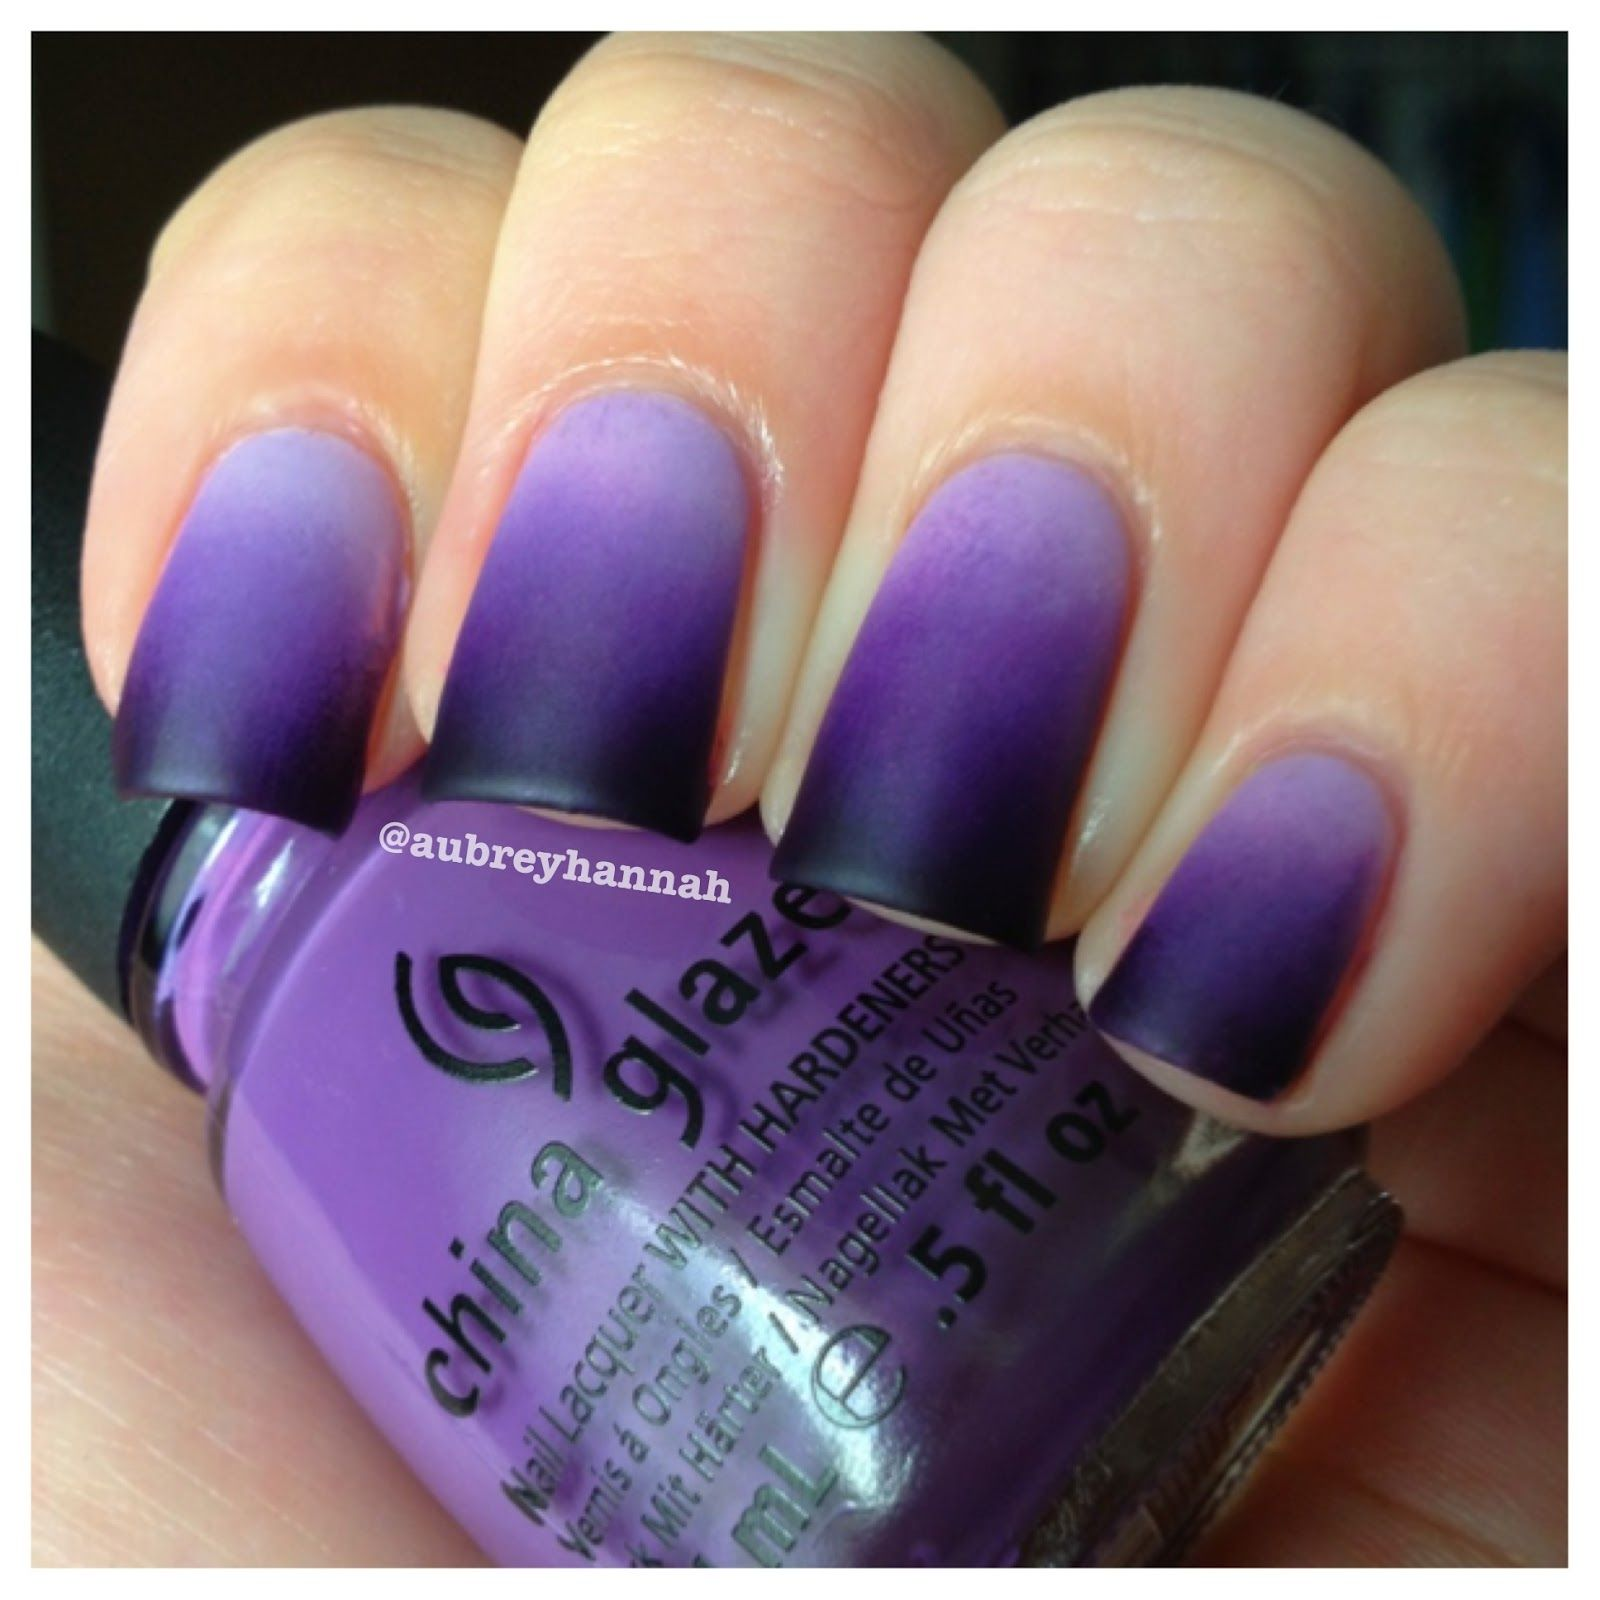 Nail art color violet - Find This Pin And More On Nail Art